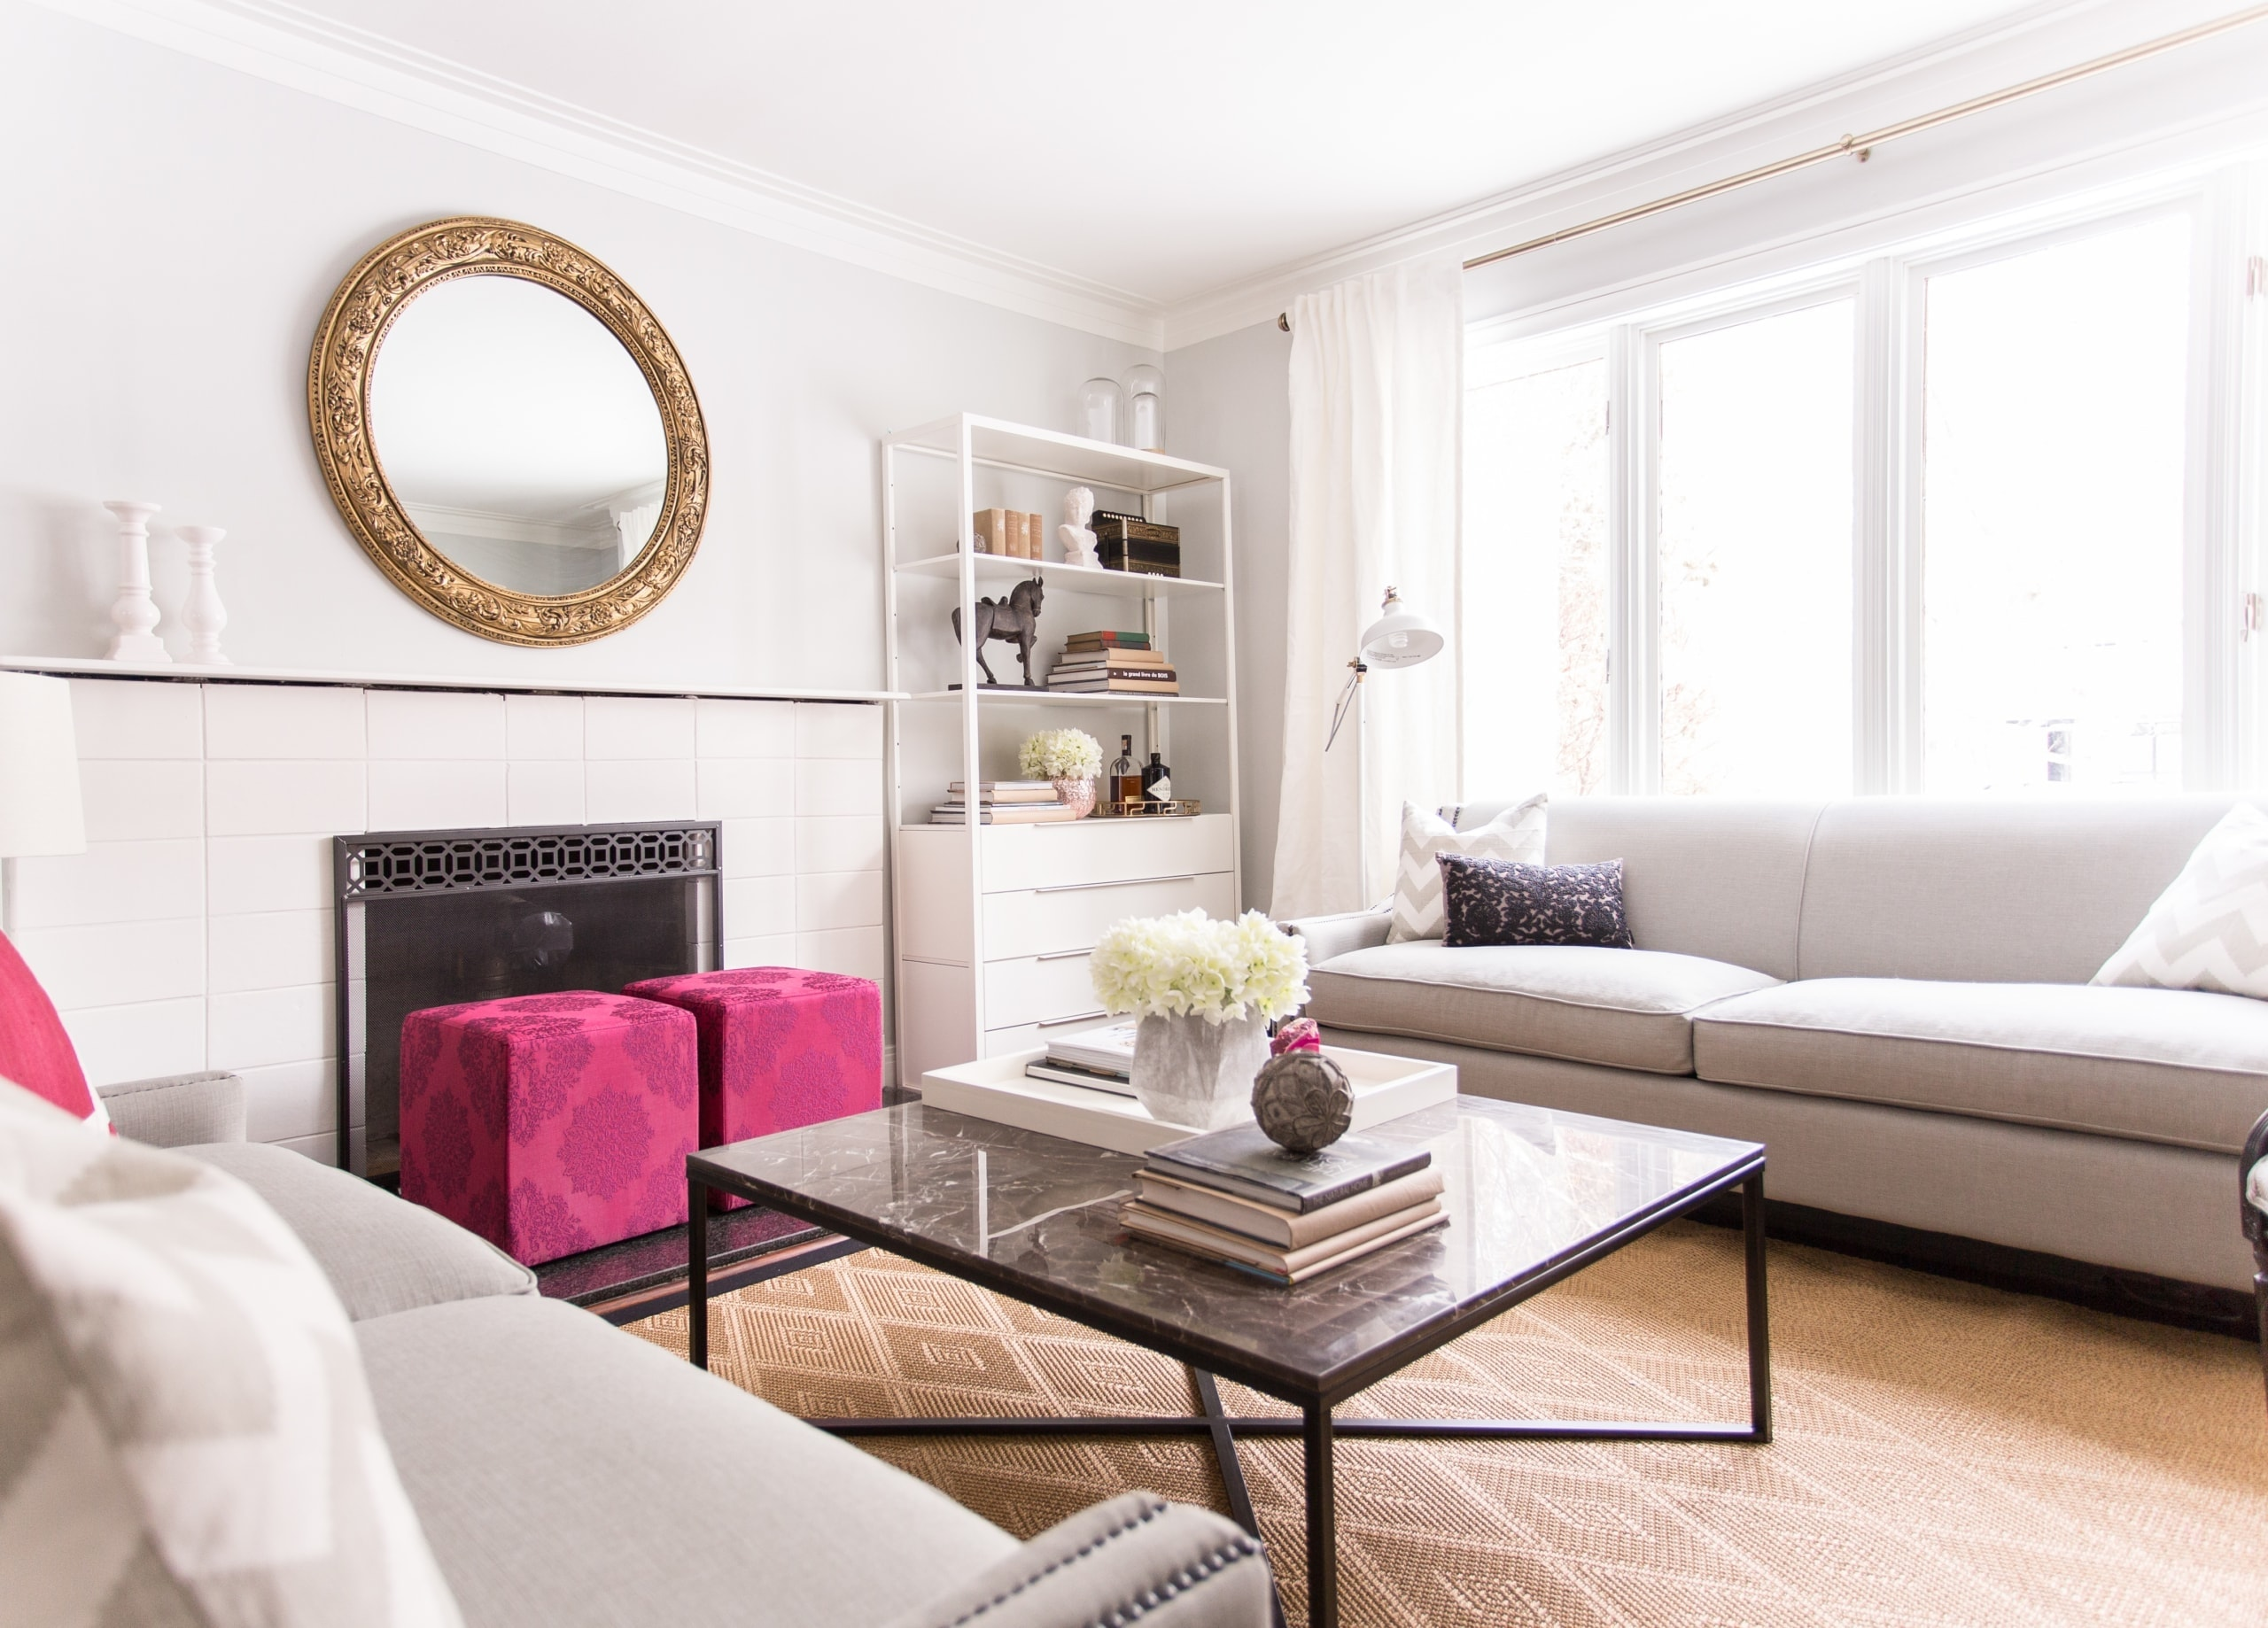 Large, open living room with pink stools next to the fireplace